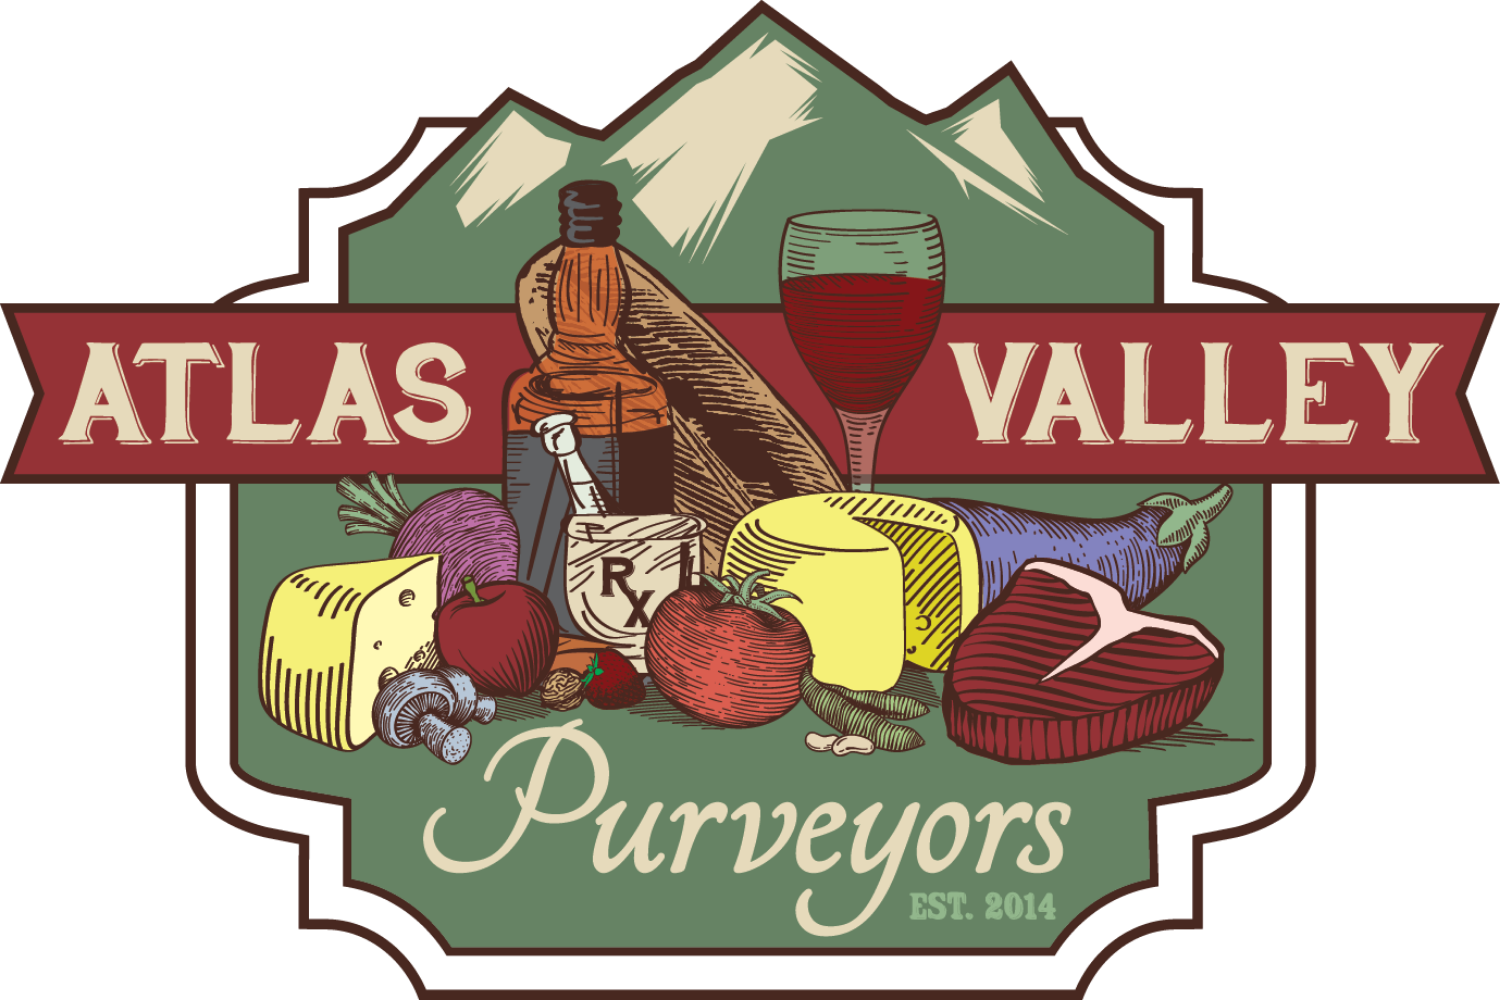 Atlas Valley Purveyors